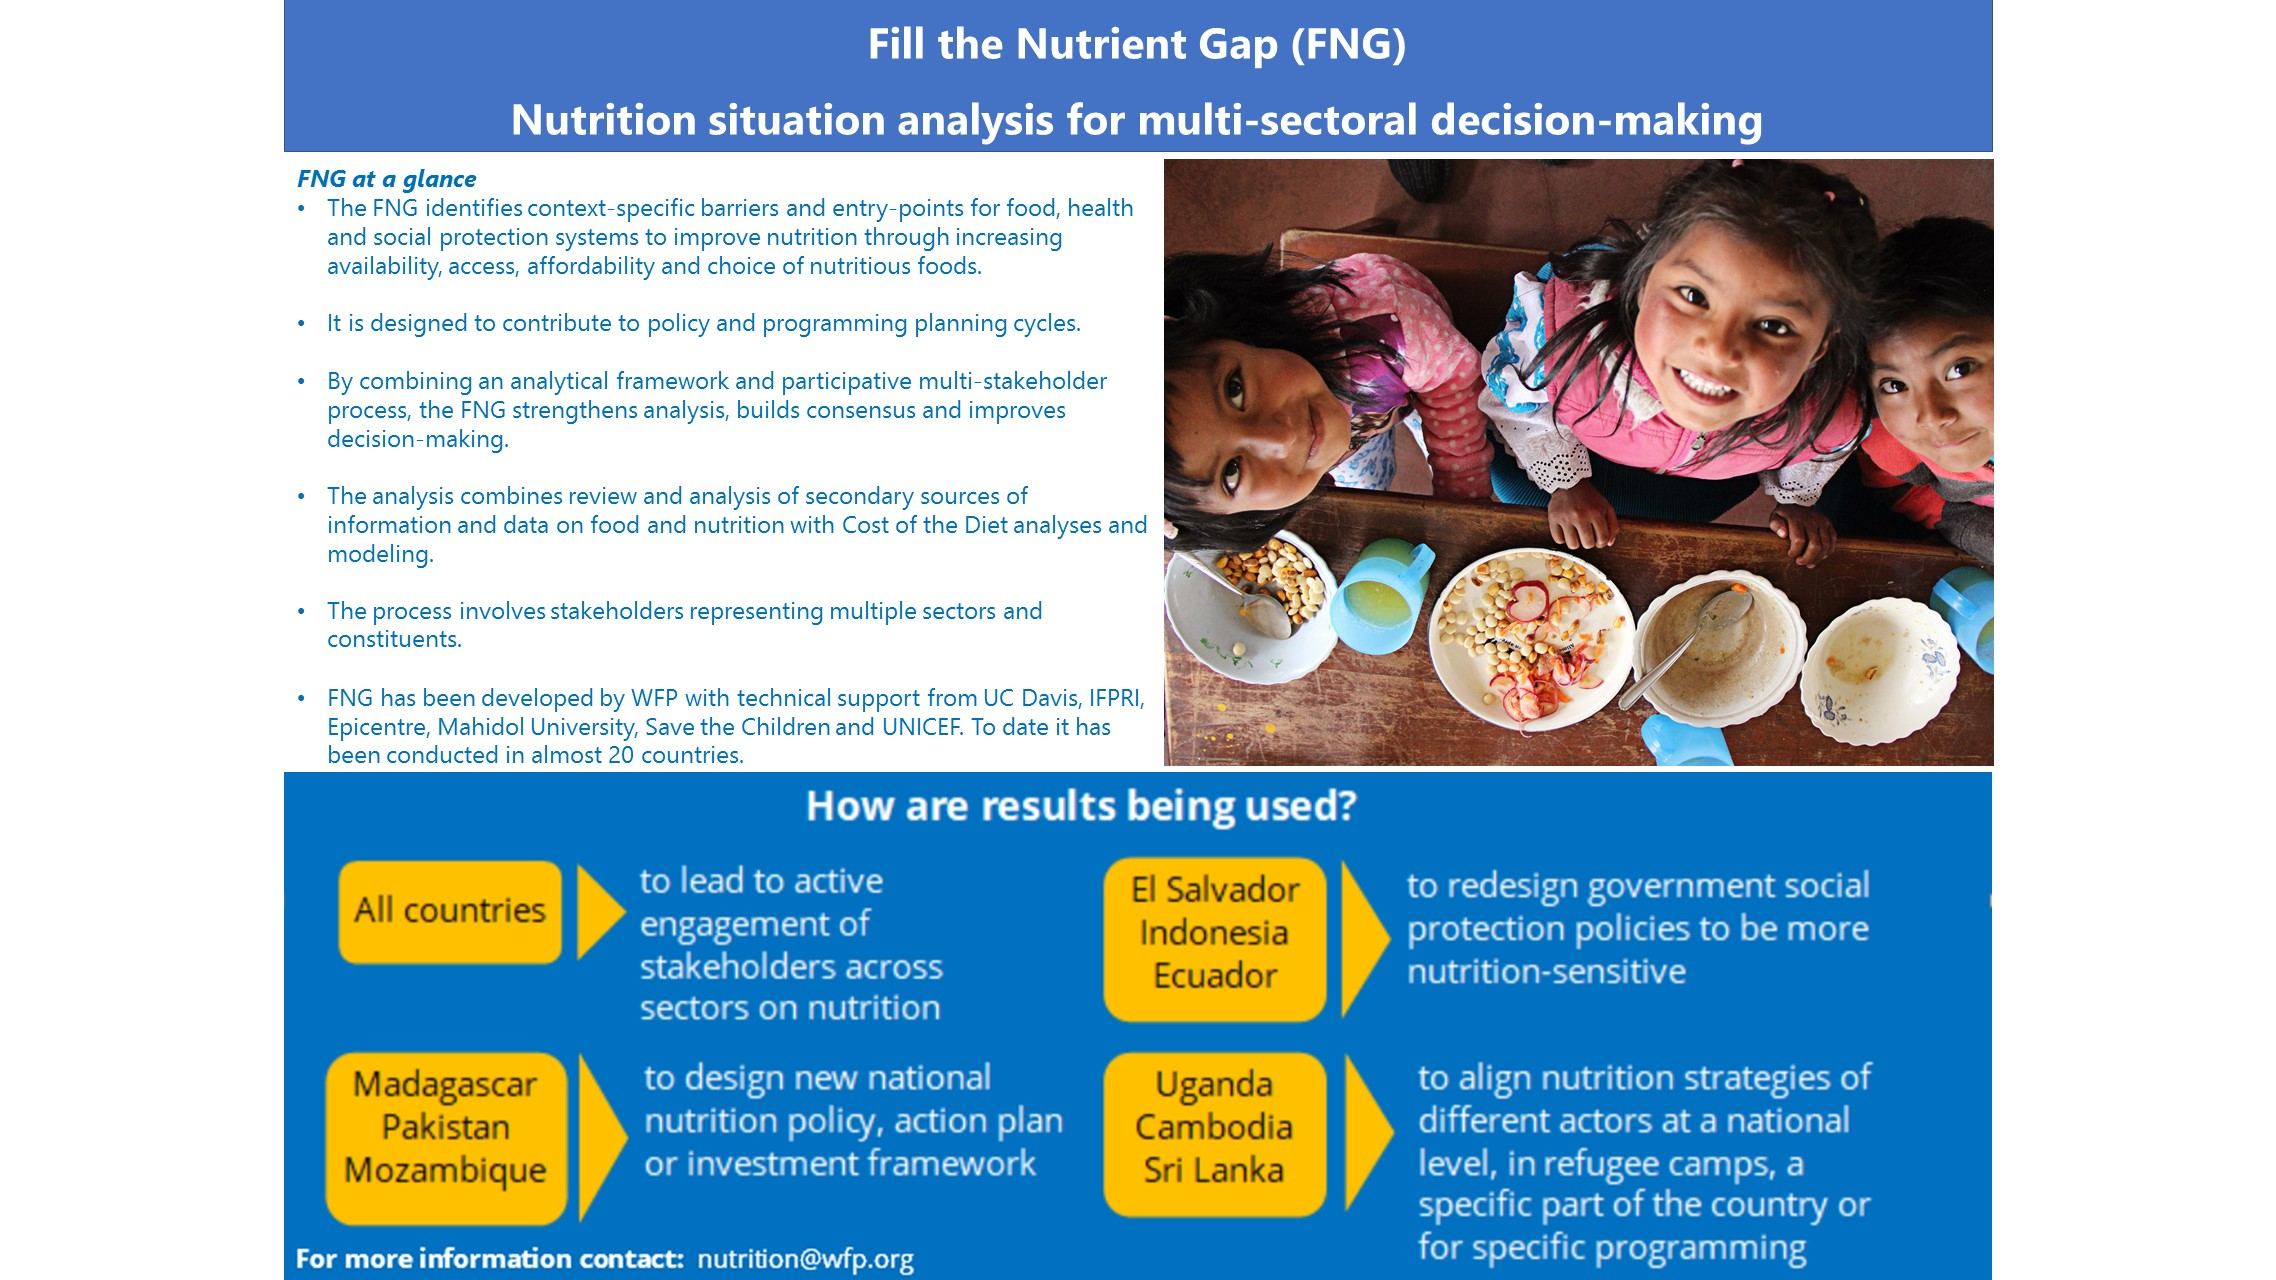 Fill the Nutrient Gap (FNG): Nutrition situation analysis for multi-sectoral decision-making